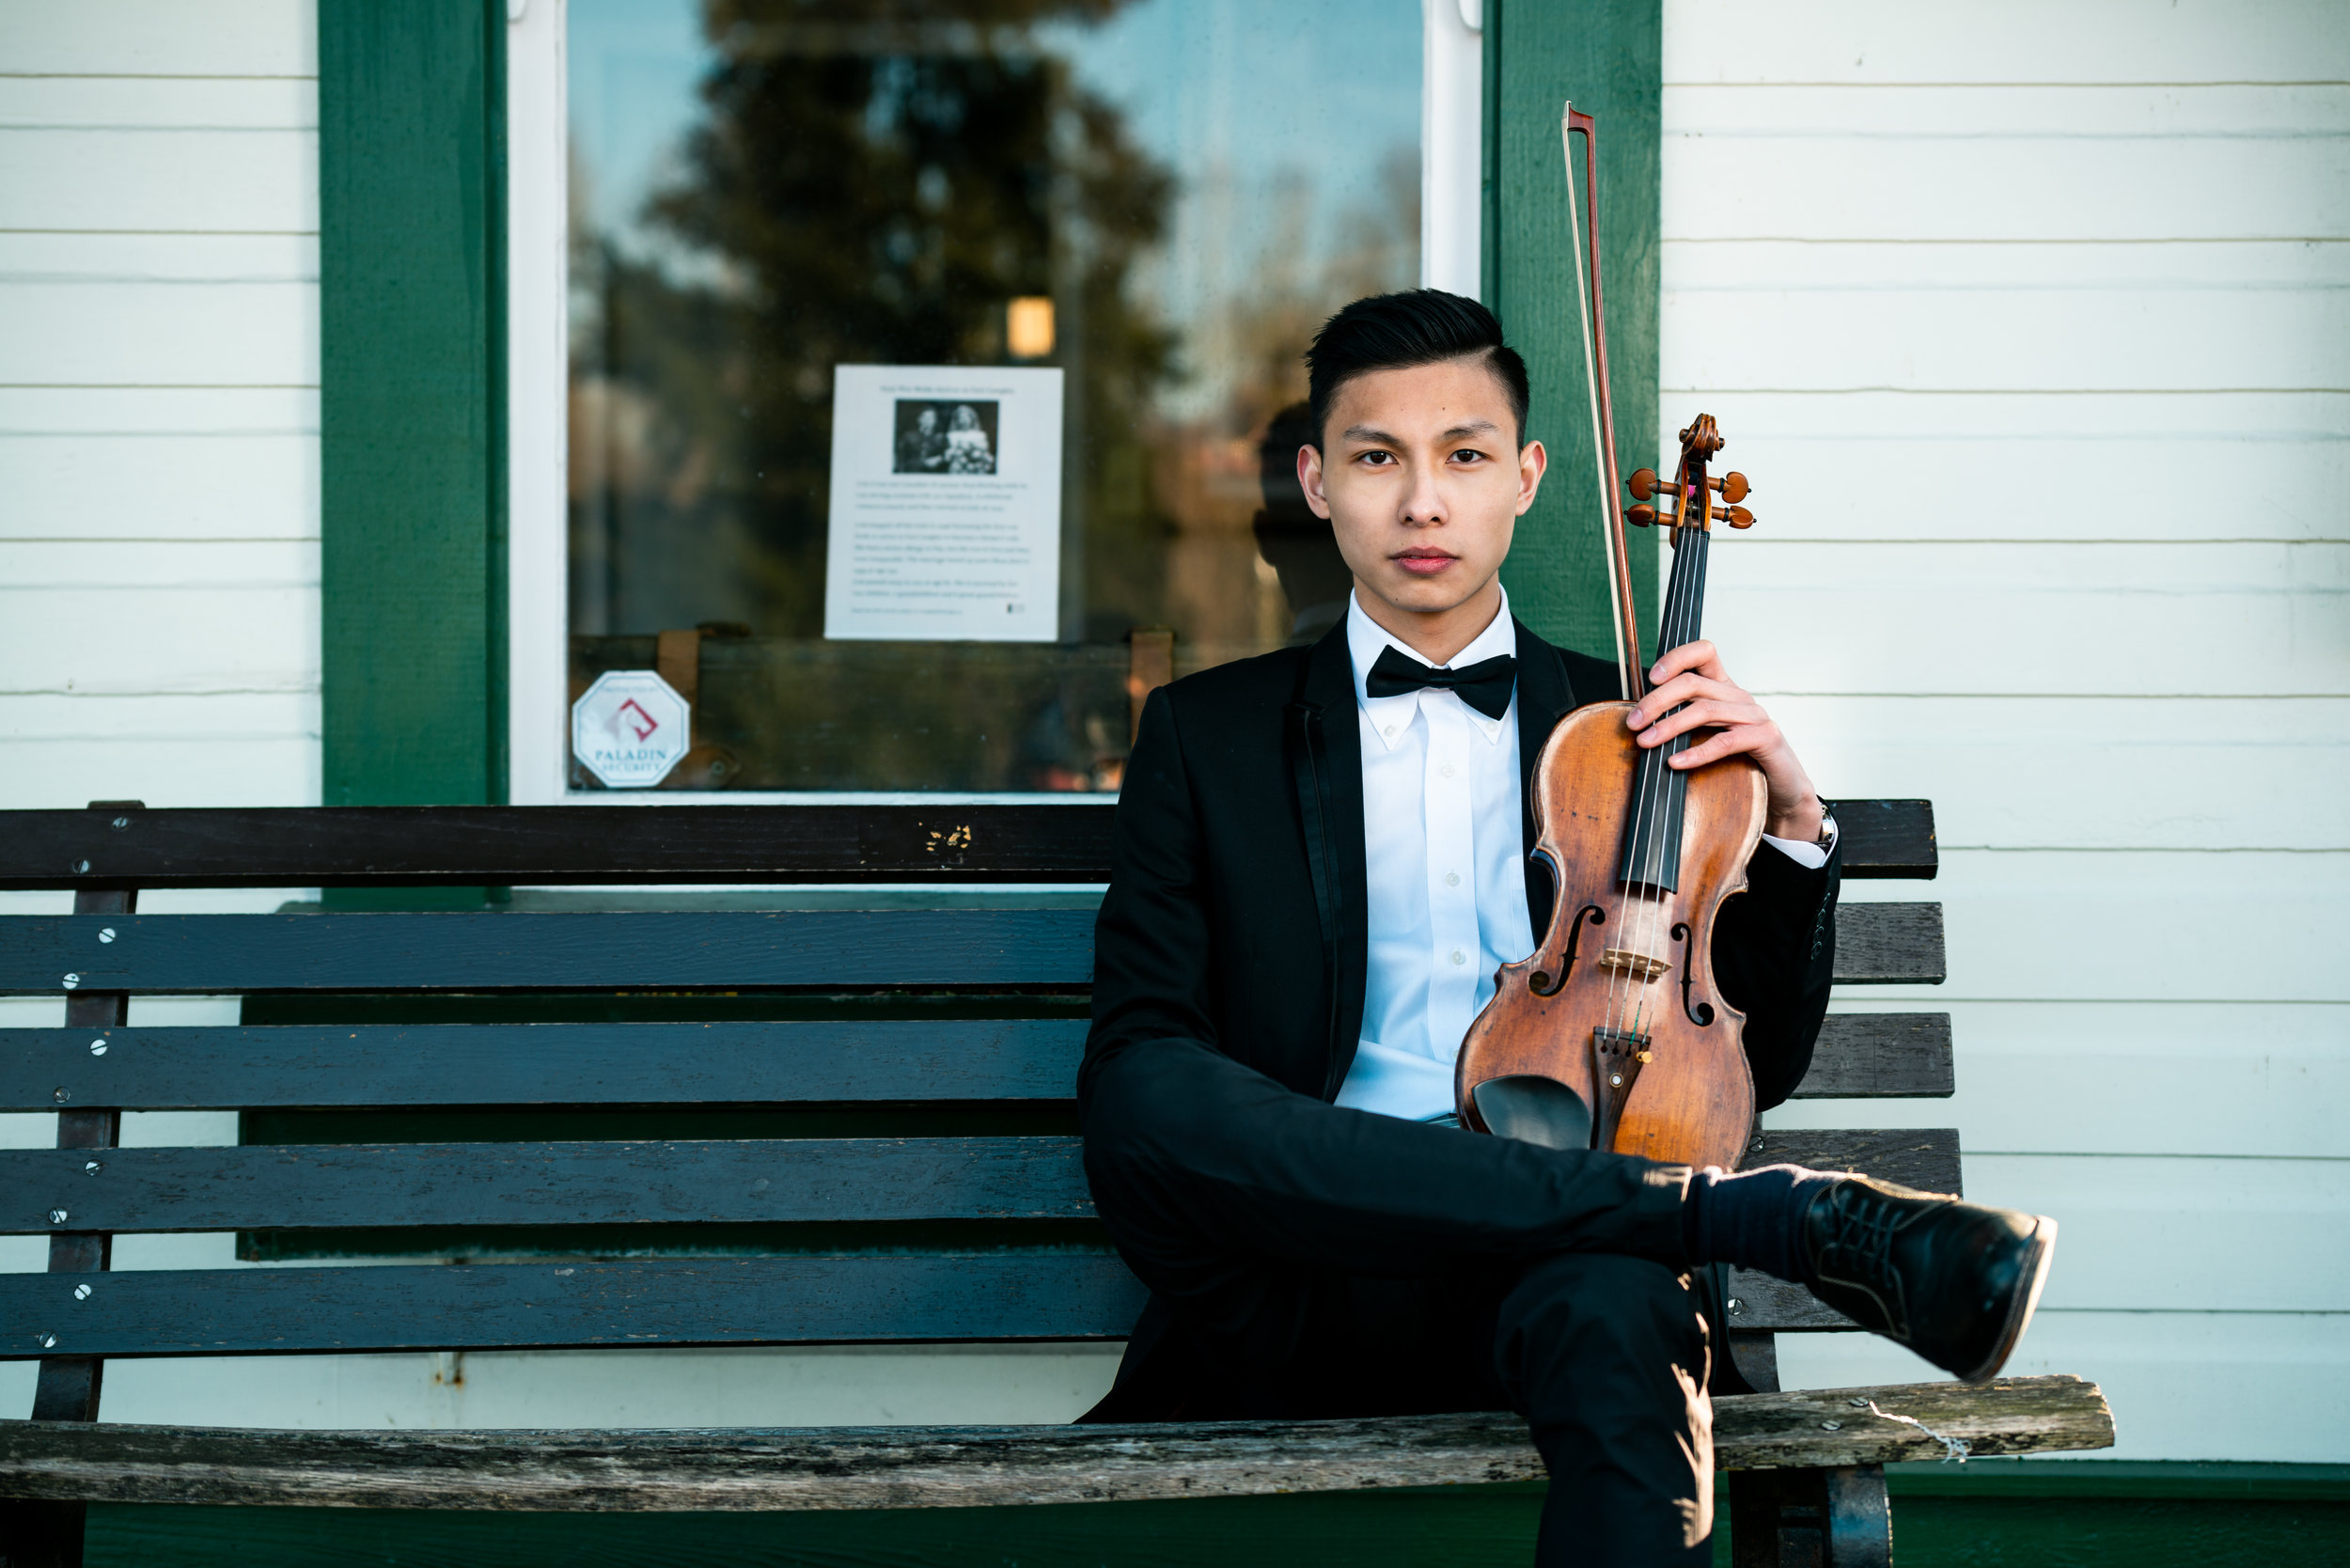 "Gower Sun - is a soloist, orchestral and chamber musician, and recording artist based in British Columbia. His playing is described by Conductor Garth Williams and violinist Jeffrey Plotnick as ""very musical and smooth and always in a controlled manner,"" with ""a fine spirit that shines through.""Gower is an active chamber musician in multiple groups and is the violinist of Trio Müvészeti, which won 1st prize in the National Chamber Class at the 2019 BC Arts Provincials, represented Team BC and was awarded 2nd prize at the FCMF National Music Festival Competition.Aside from being the current Associate Concertmaster in VAMSO and the former Concertmaster in the Langley Symphony Orchestra, Gower frequently appears in numerous film scores and independent music productions.Gower teaches students from a wide range of age and level. His students have multiple times been awarded the RCM Regional Gold Medal for Highest Exam Mark in addition multiple prizes at local competitions.Gower plays on an Italian violin attributed to the Testore family, (Milan, c.1750)."